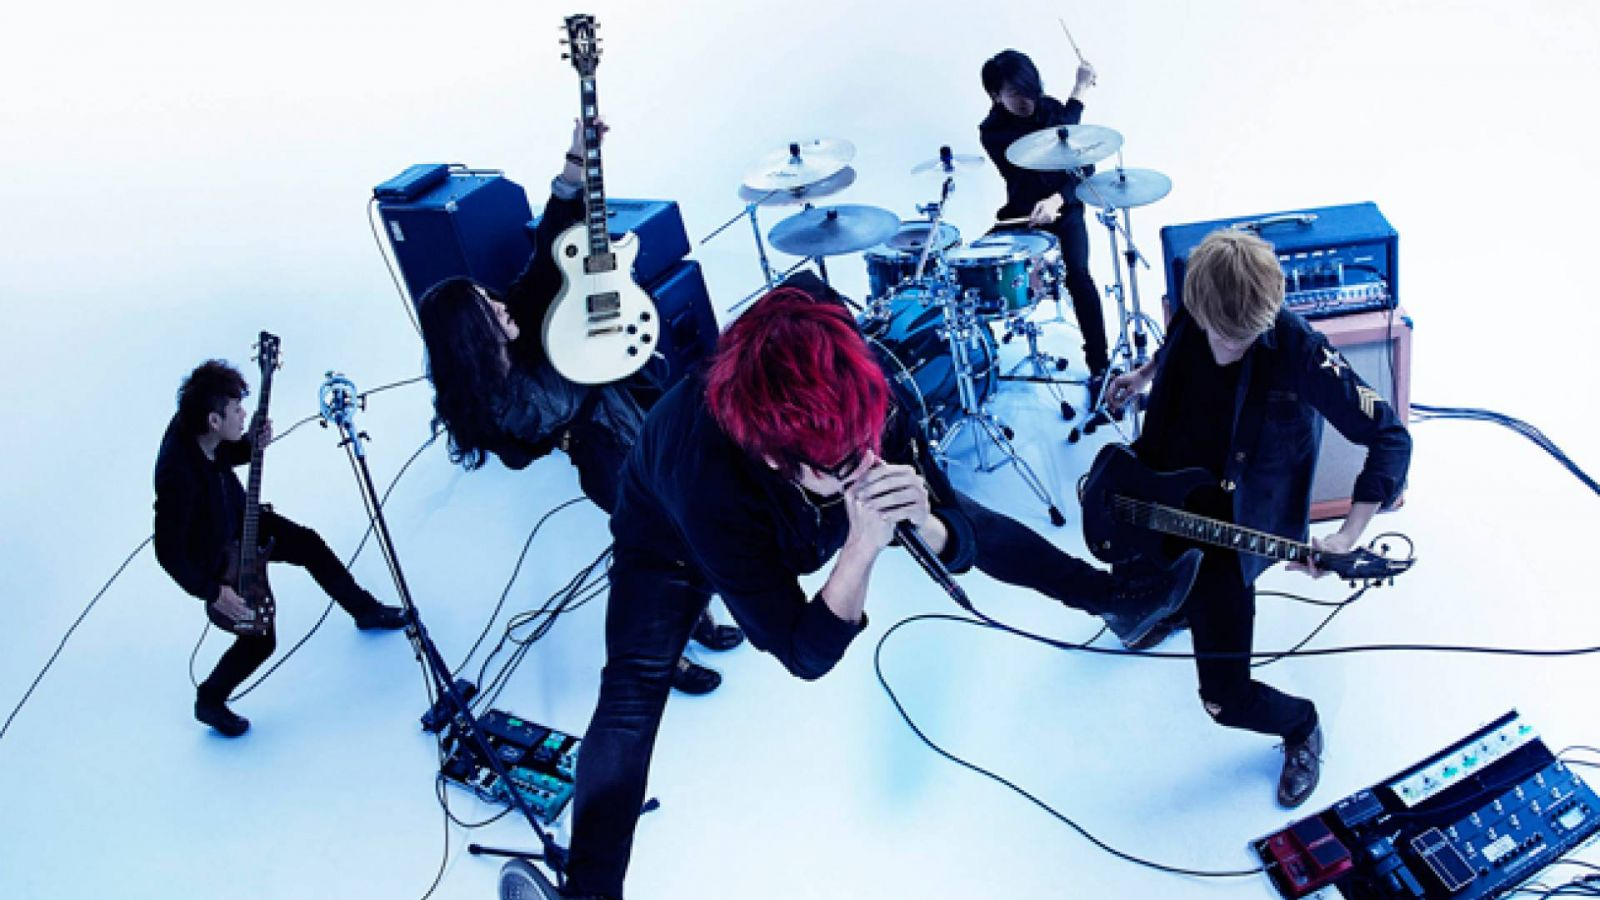 a crowd of rebellion © 2015 Warner Music Japan Inc. All rights reserved.